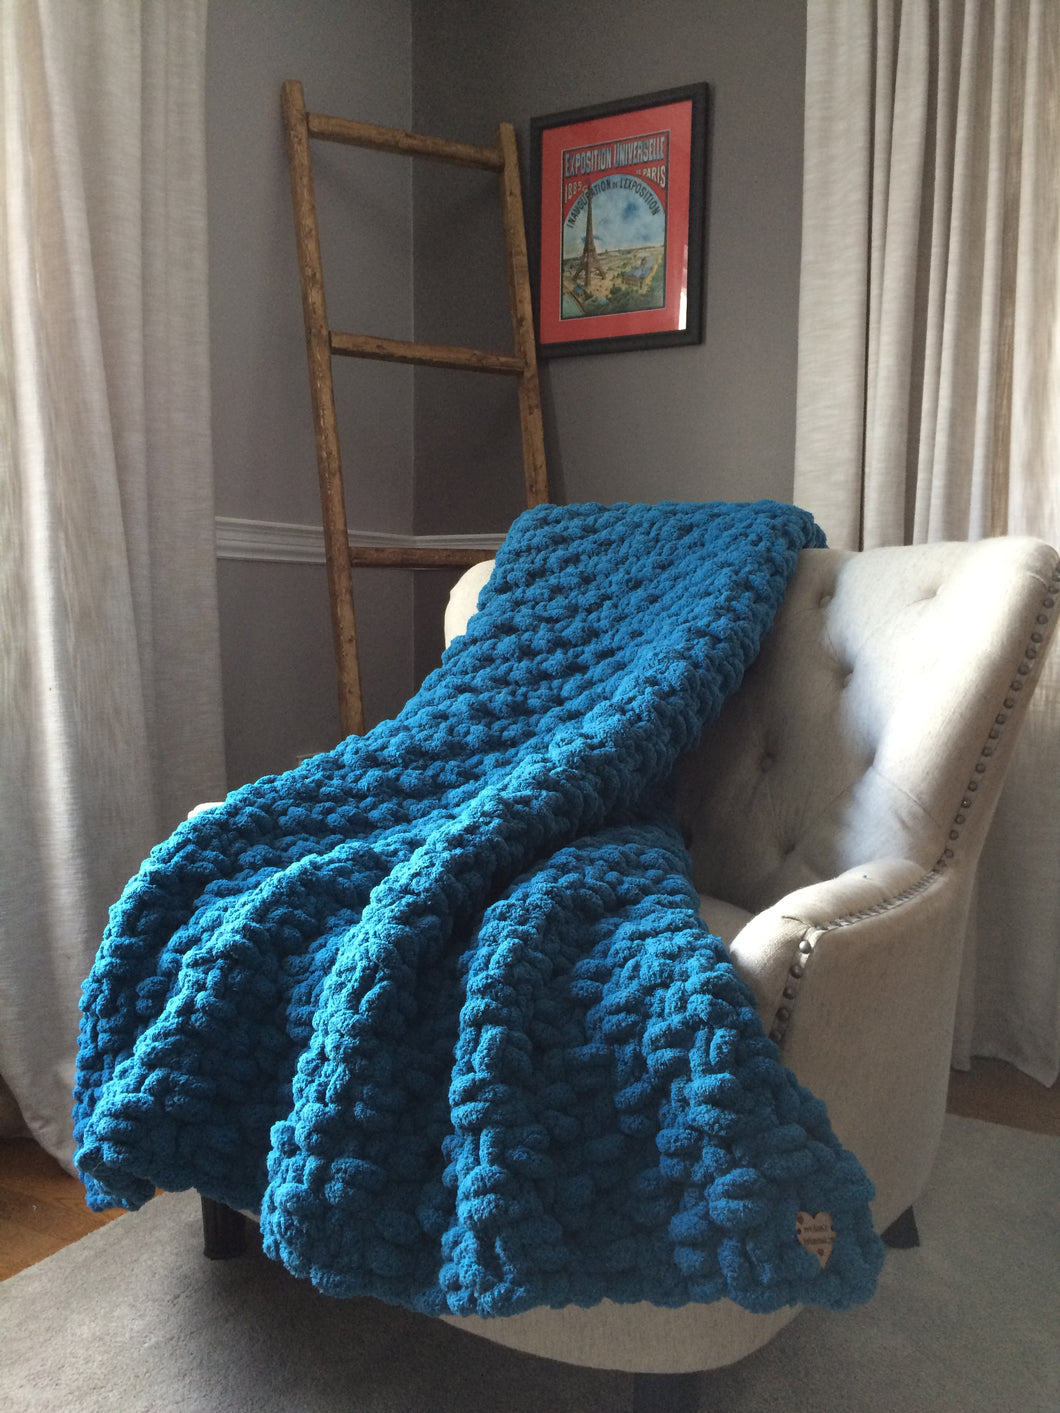 Chunky Knit Blanket | Teal Blue Knit Throw - Hands On For Homemade